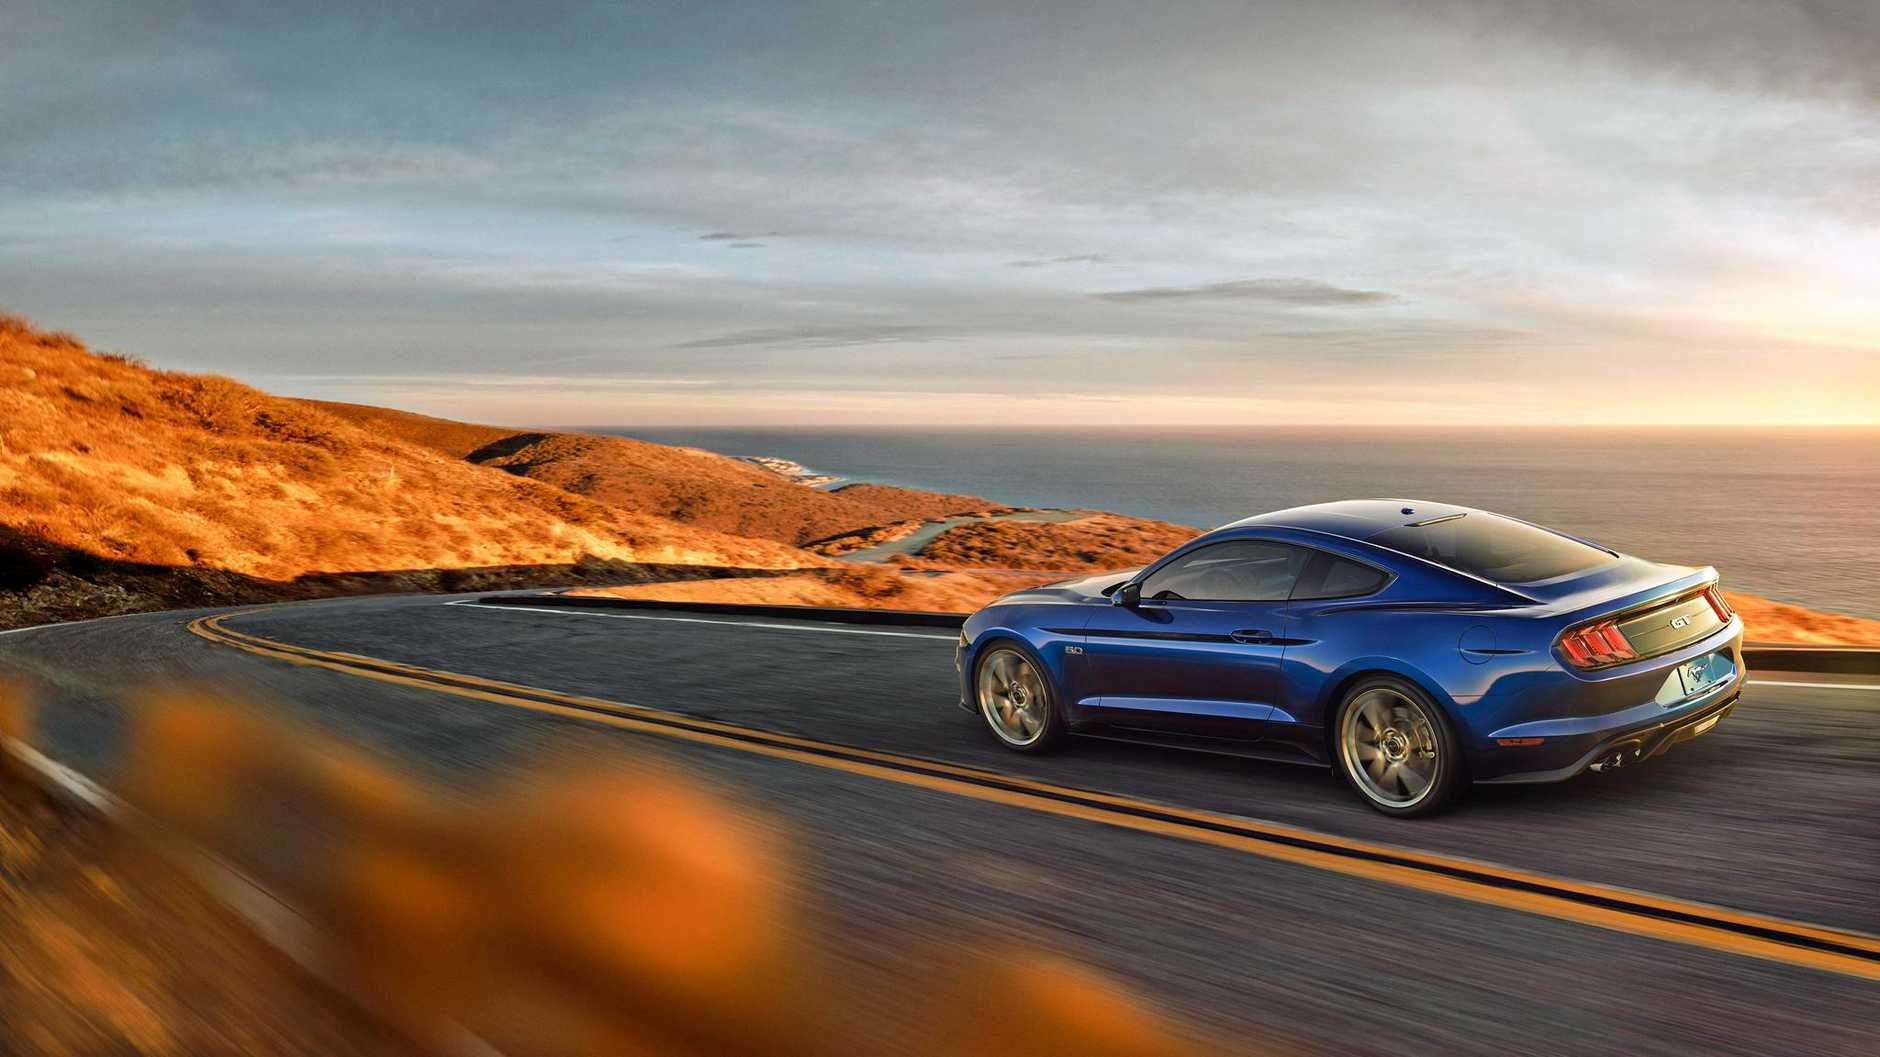 the 2018 Ford Mustang.